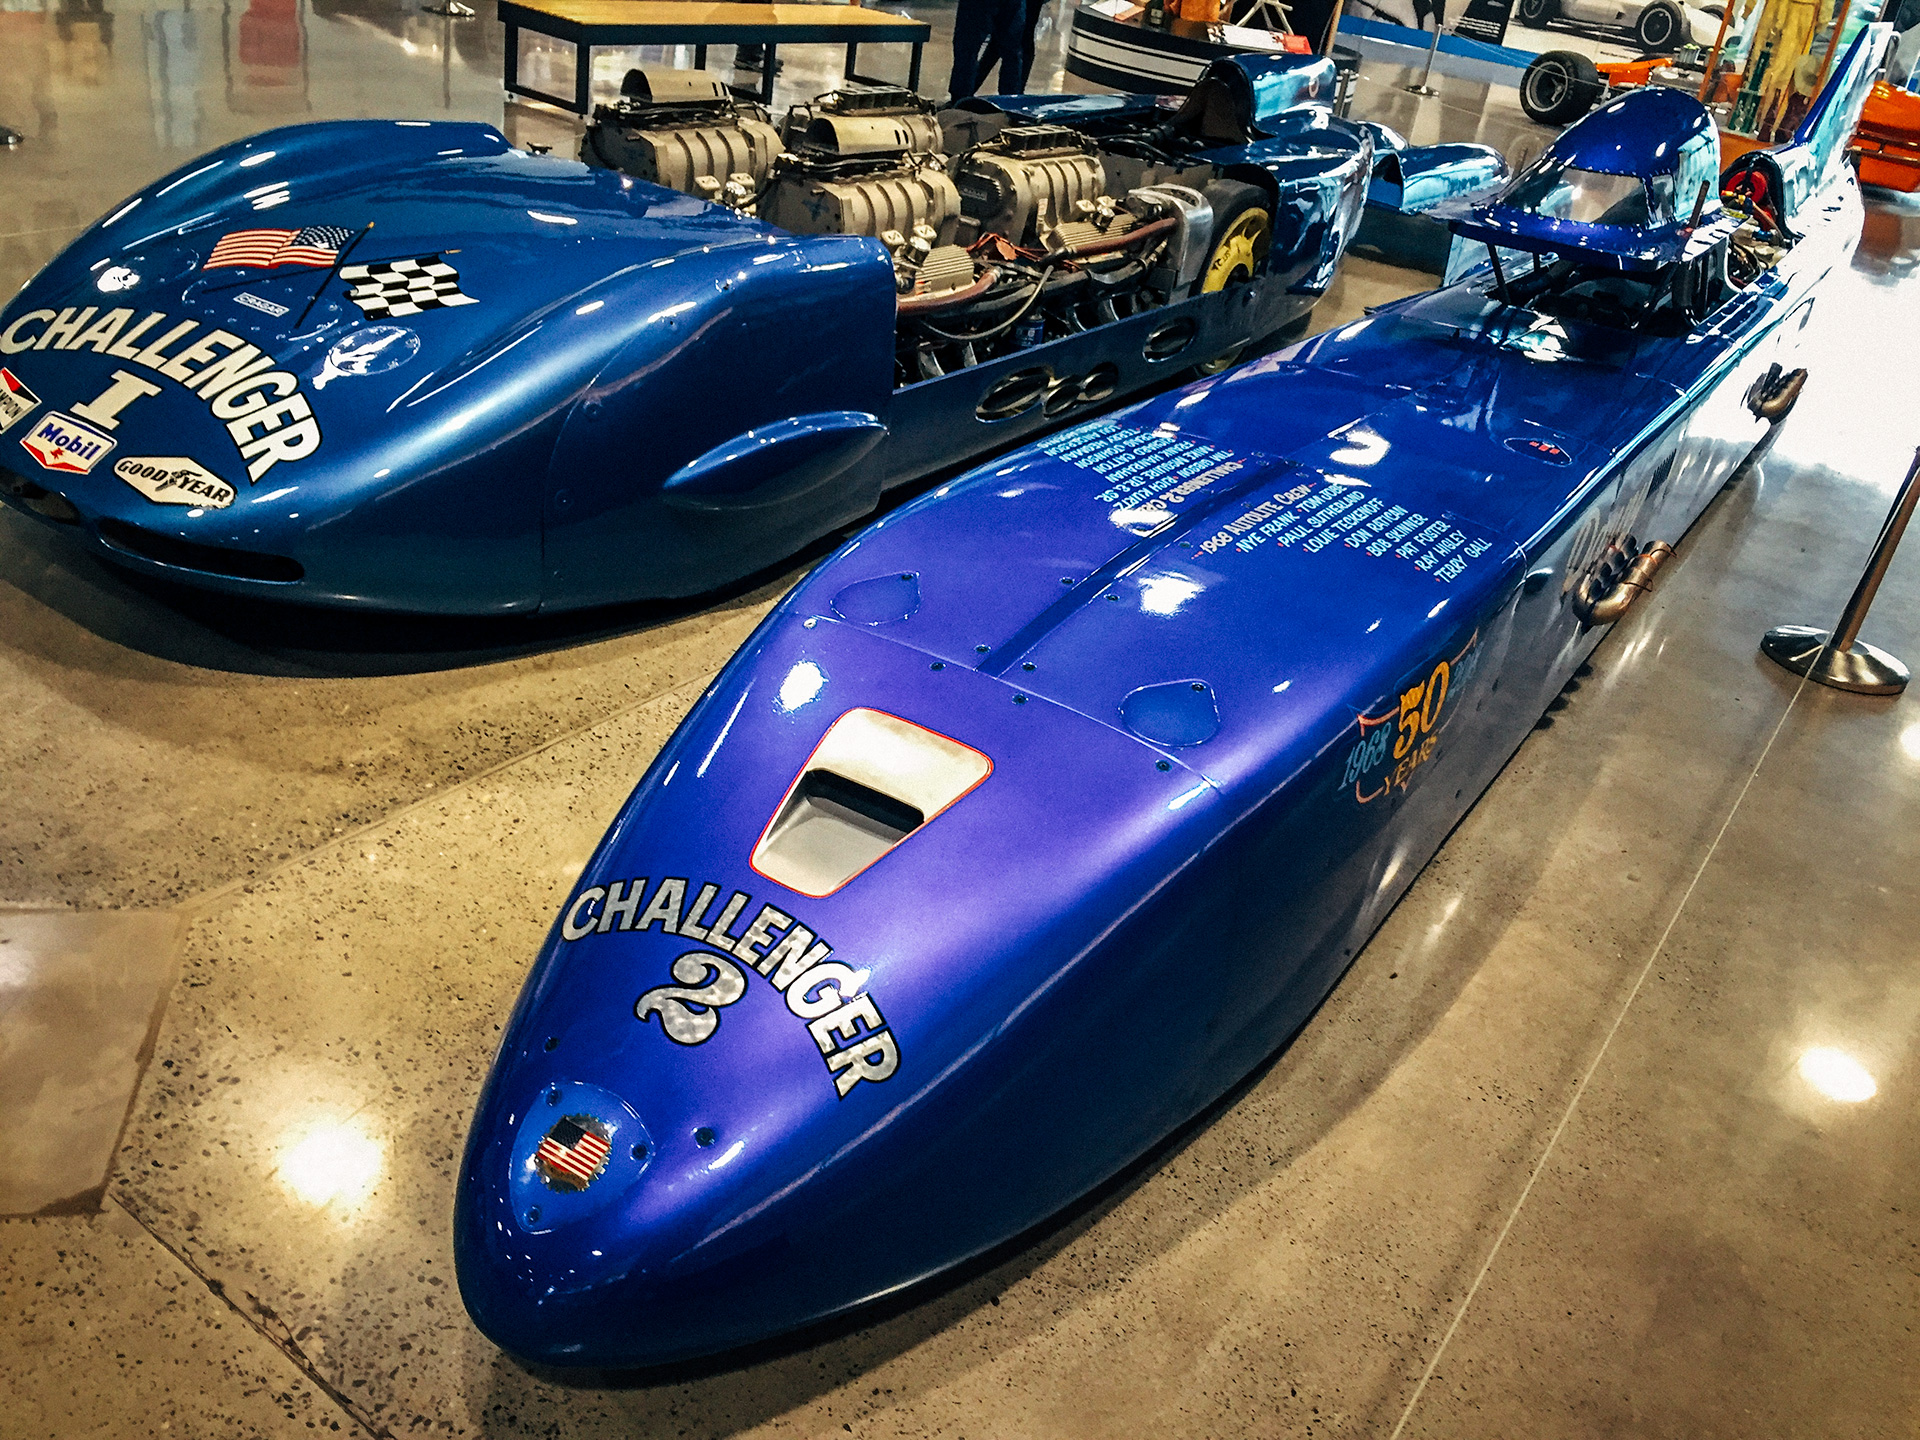 Mickey Thompson's Challenger II land speed racer next to Danny Thompson's record-setting Challenger 2 land speed racer at the World of Speed Museum